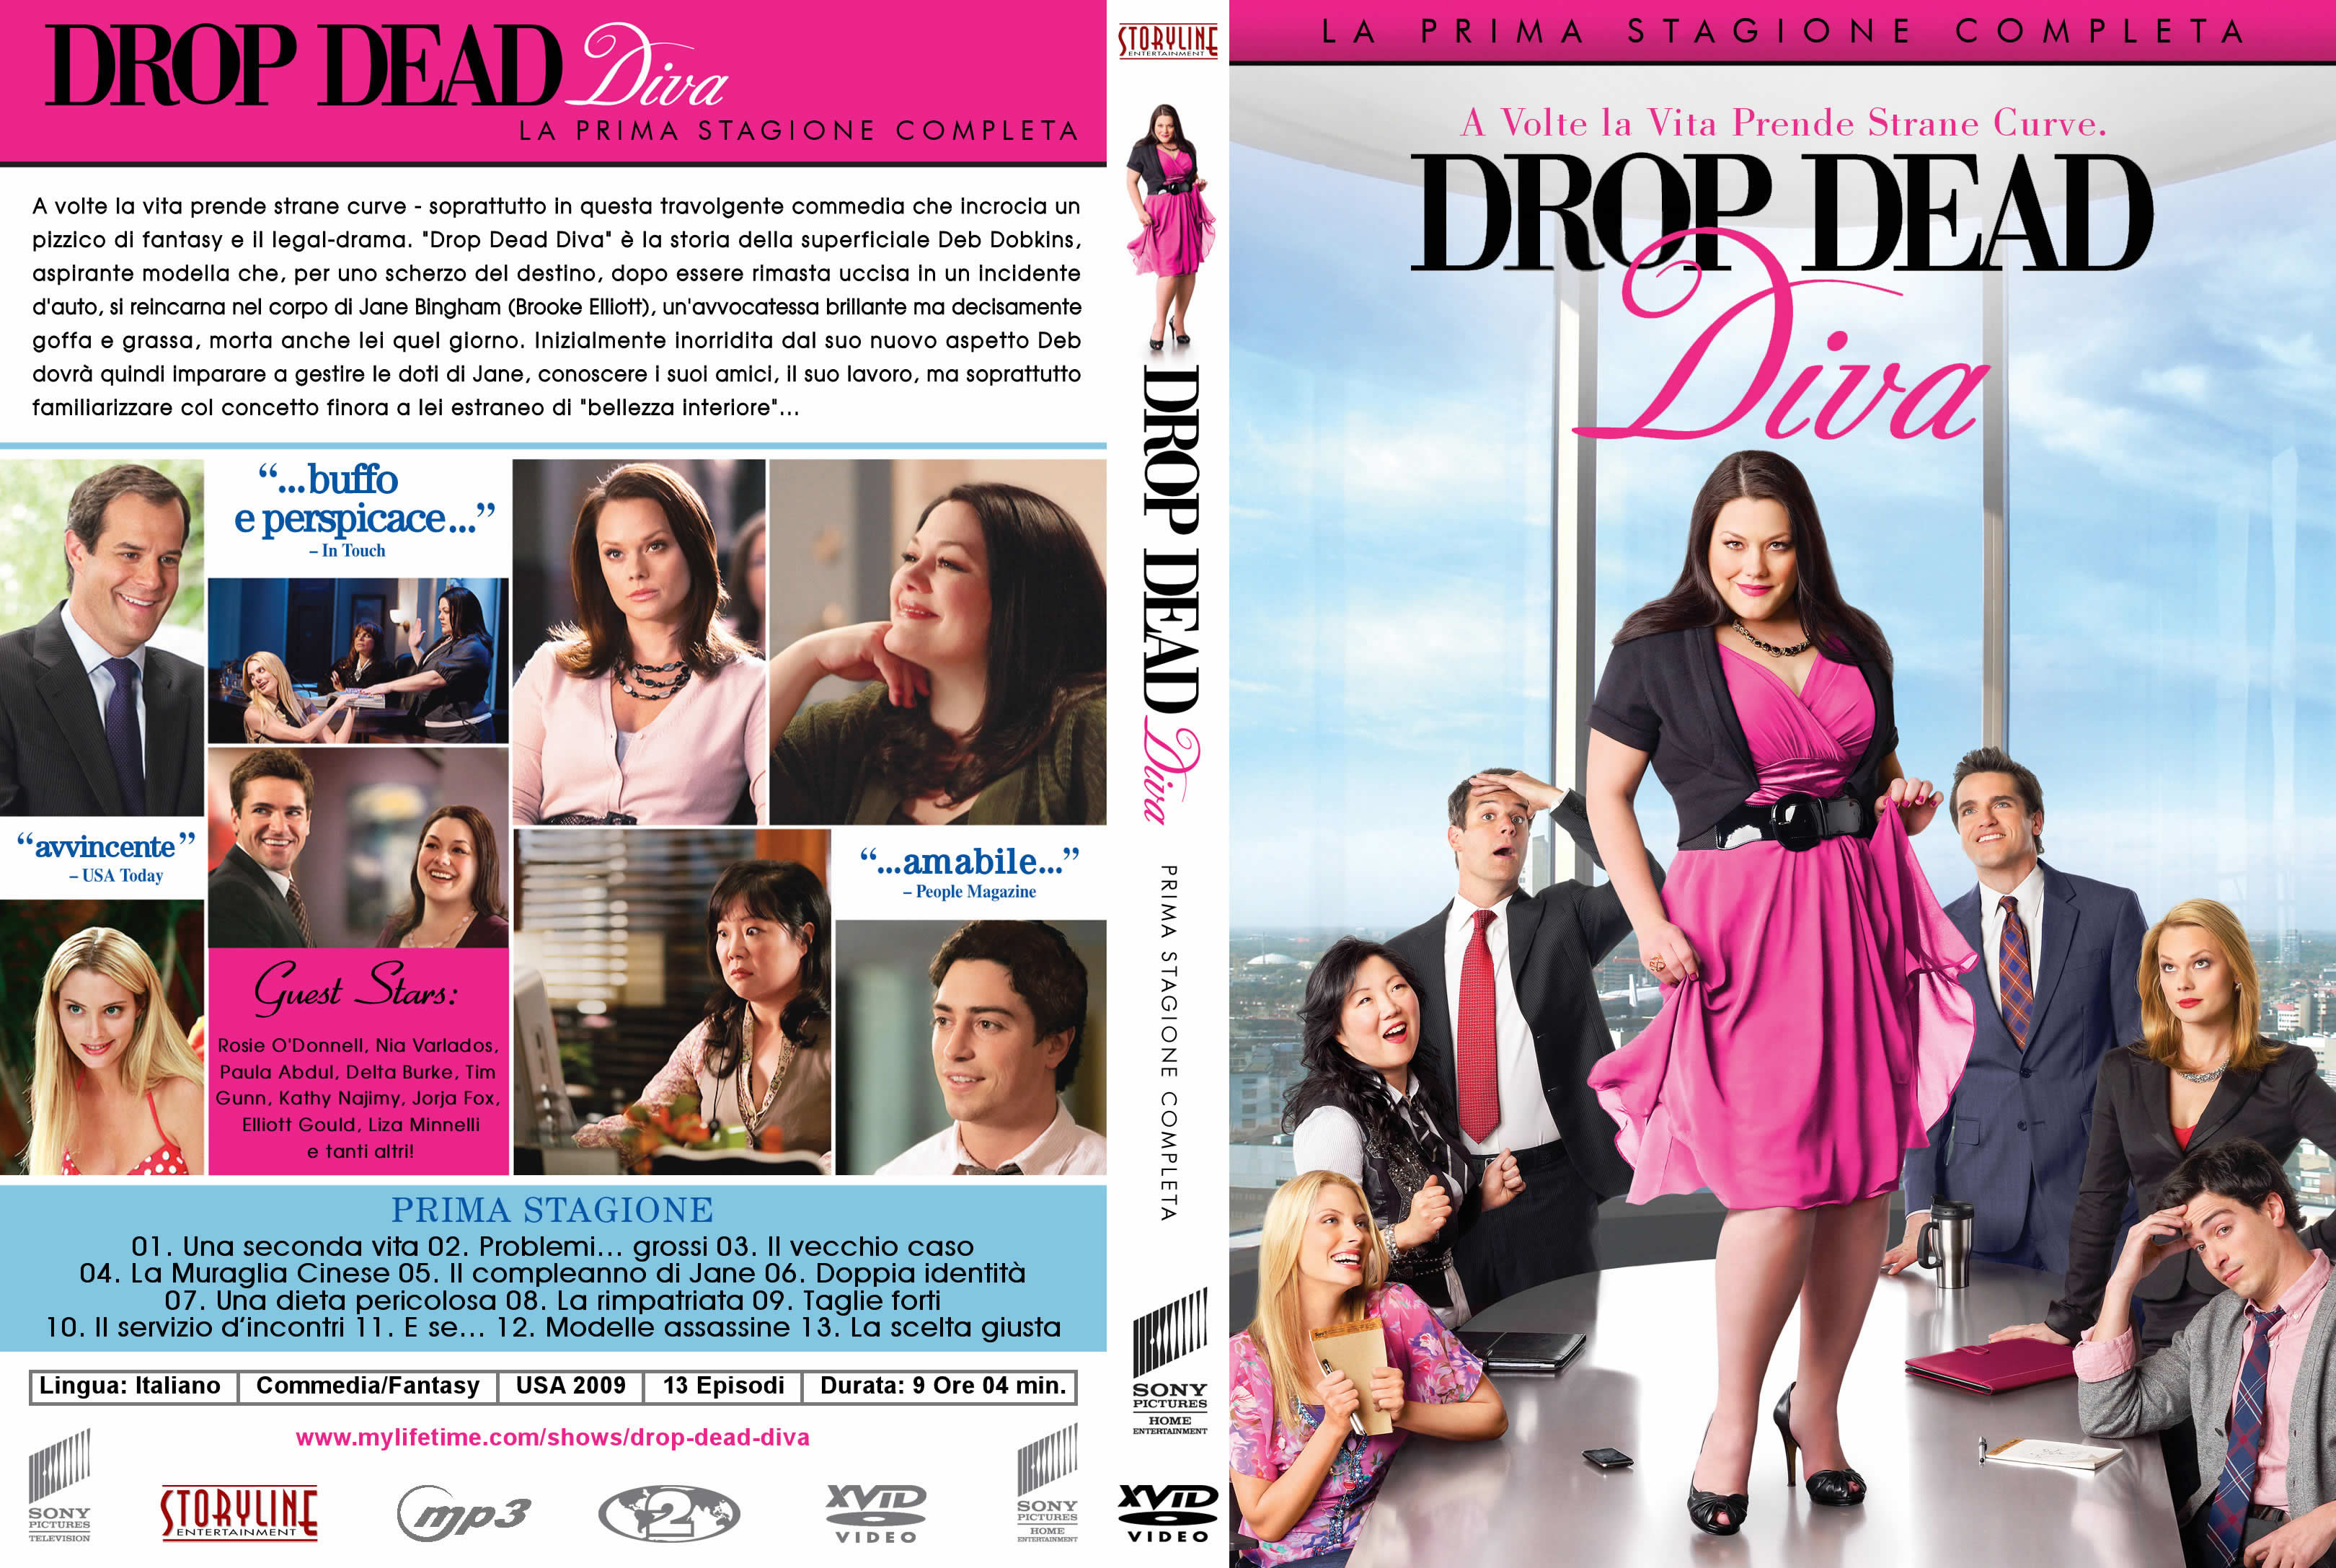 D pagina 4 viaggio africa cover dvd game ricette - Drop dead diva seasons ...